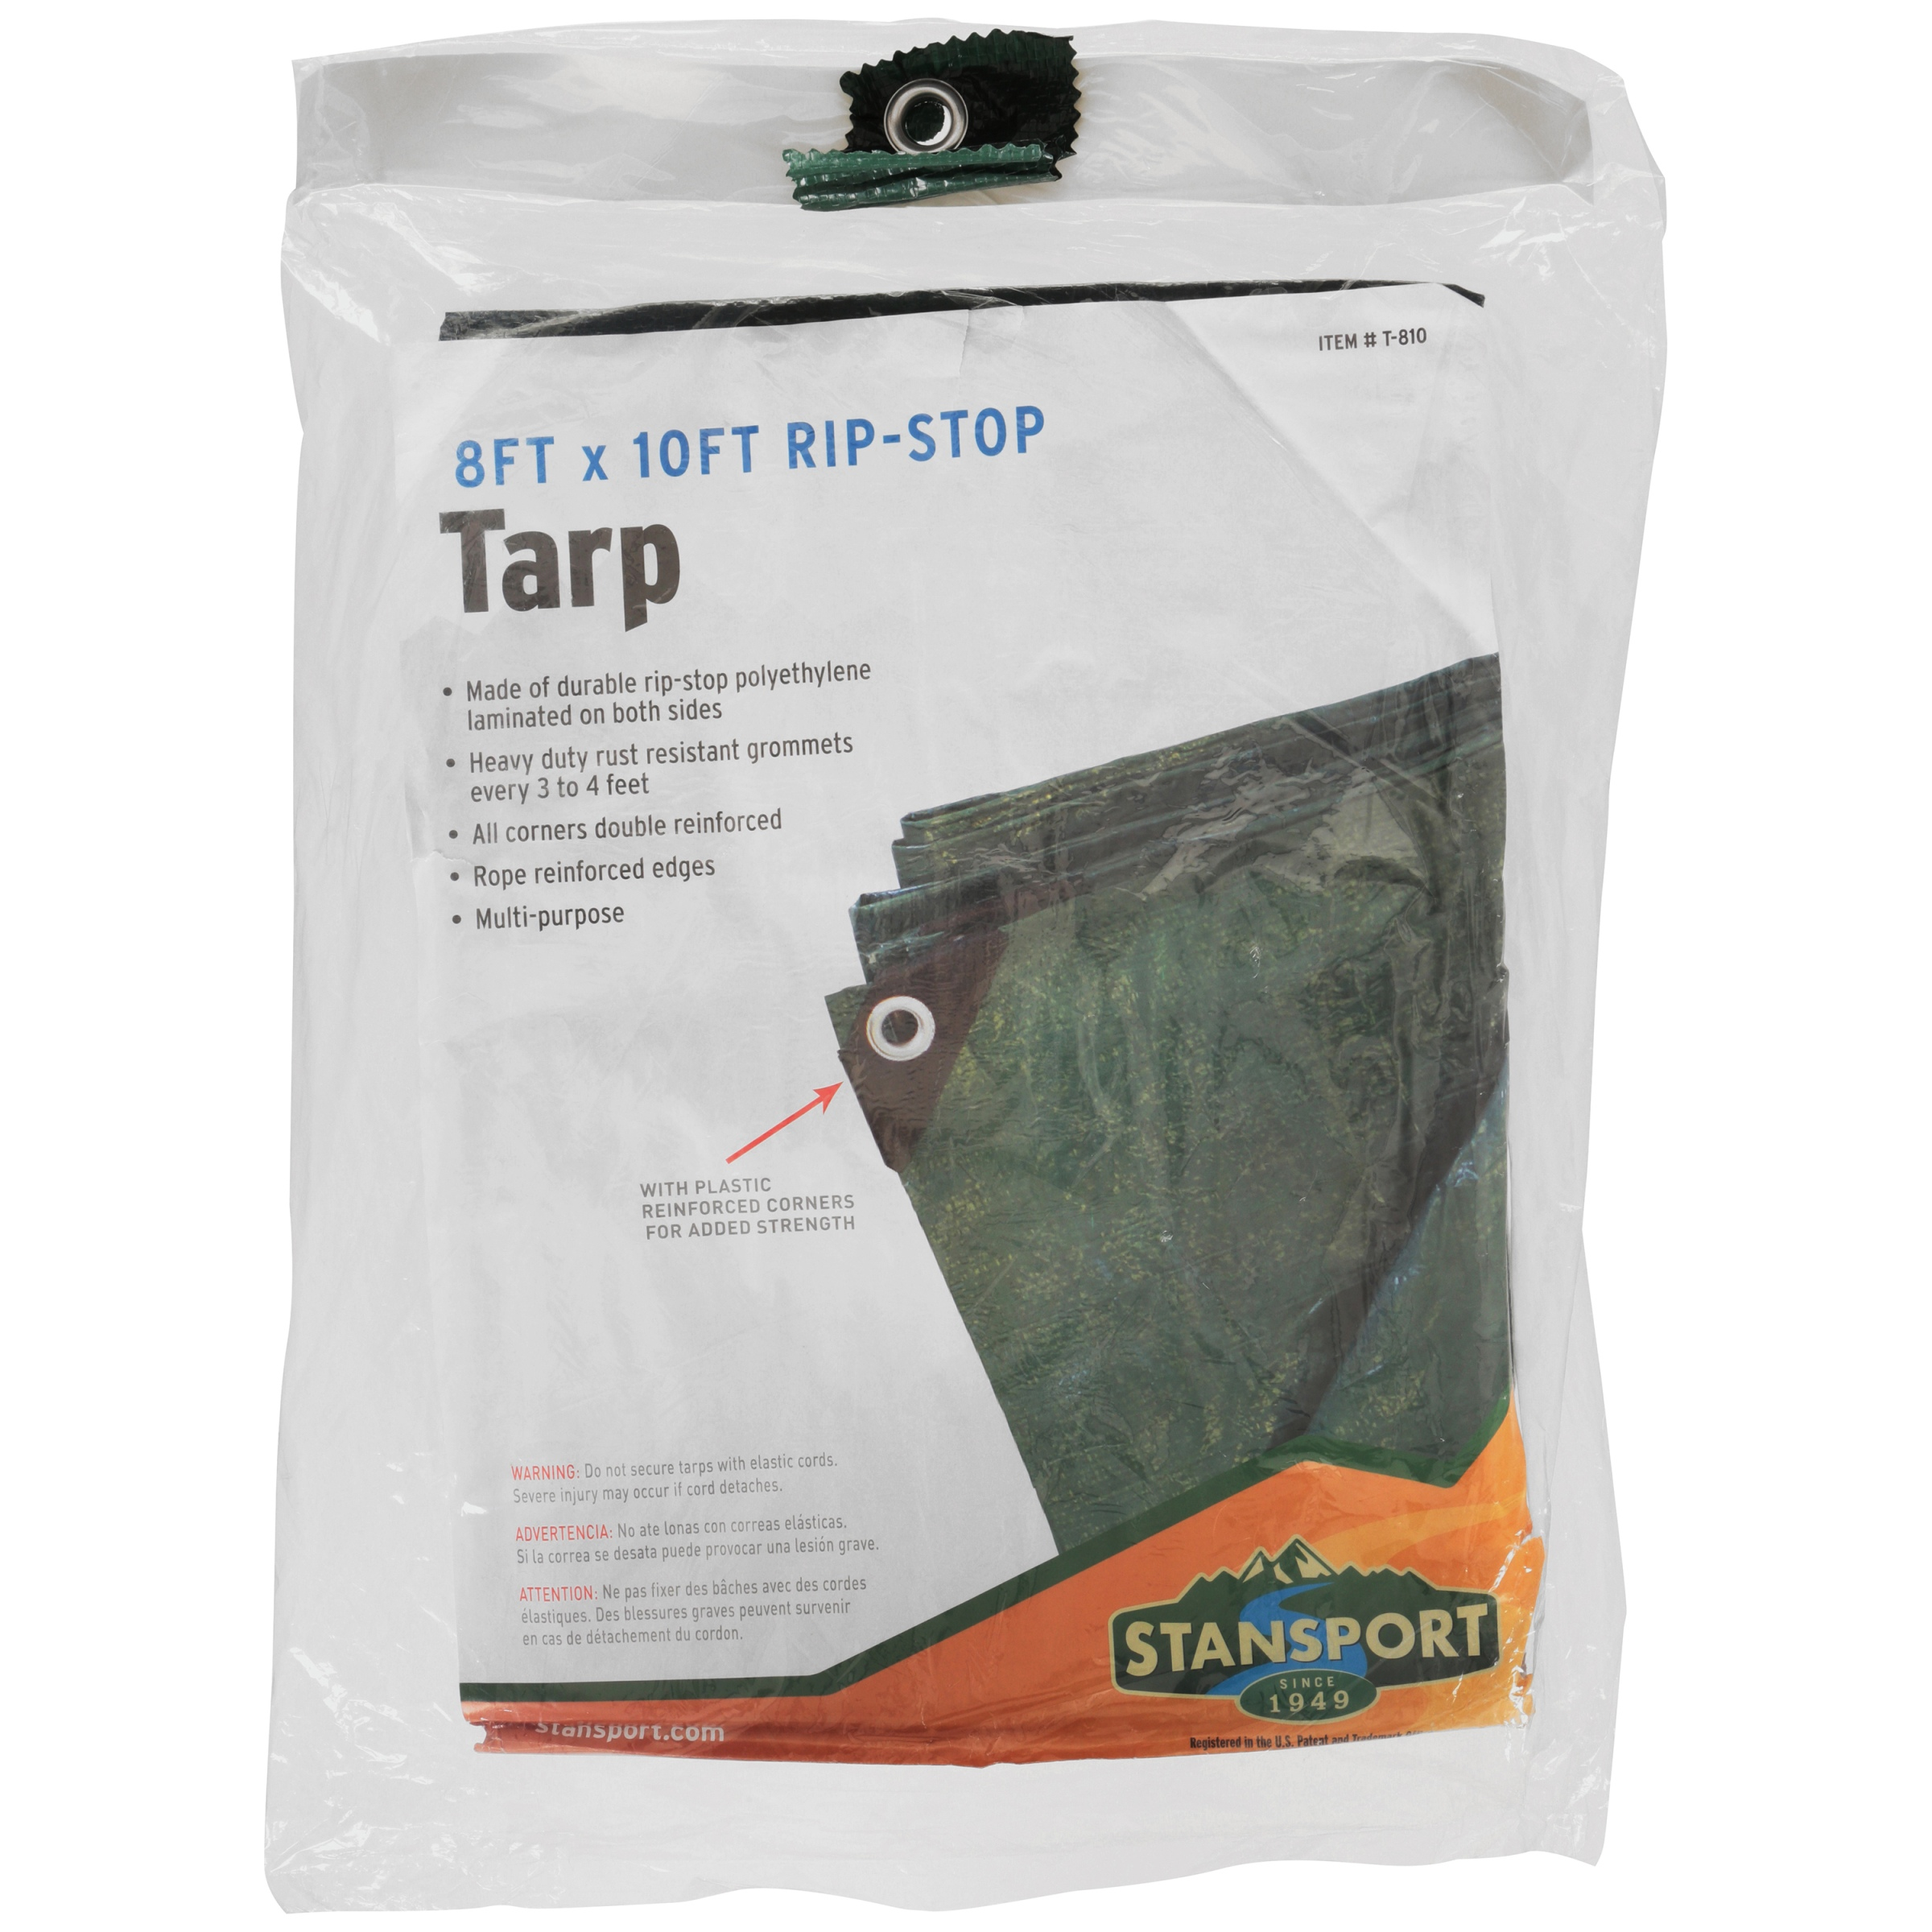 Stansport Rip Stop Tarp - 8 FT x 10 FT - Green